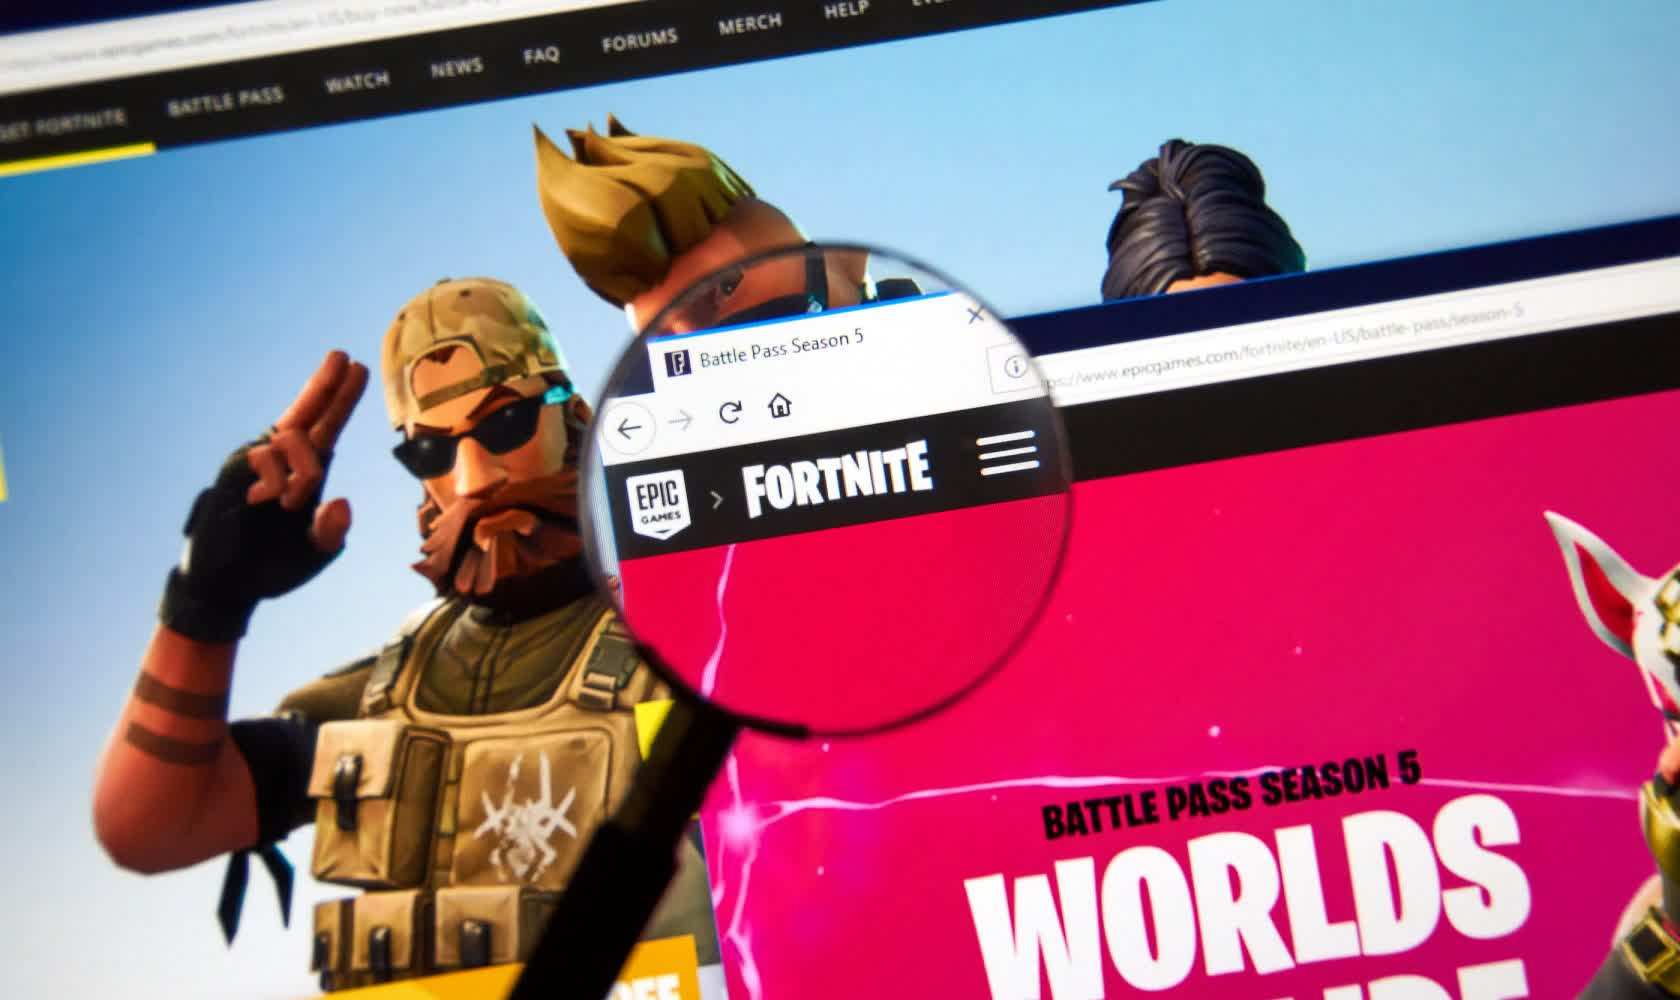 Epic's game launcher is a battery hog on some platforms, especially Ice Lake